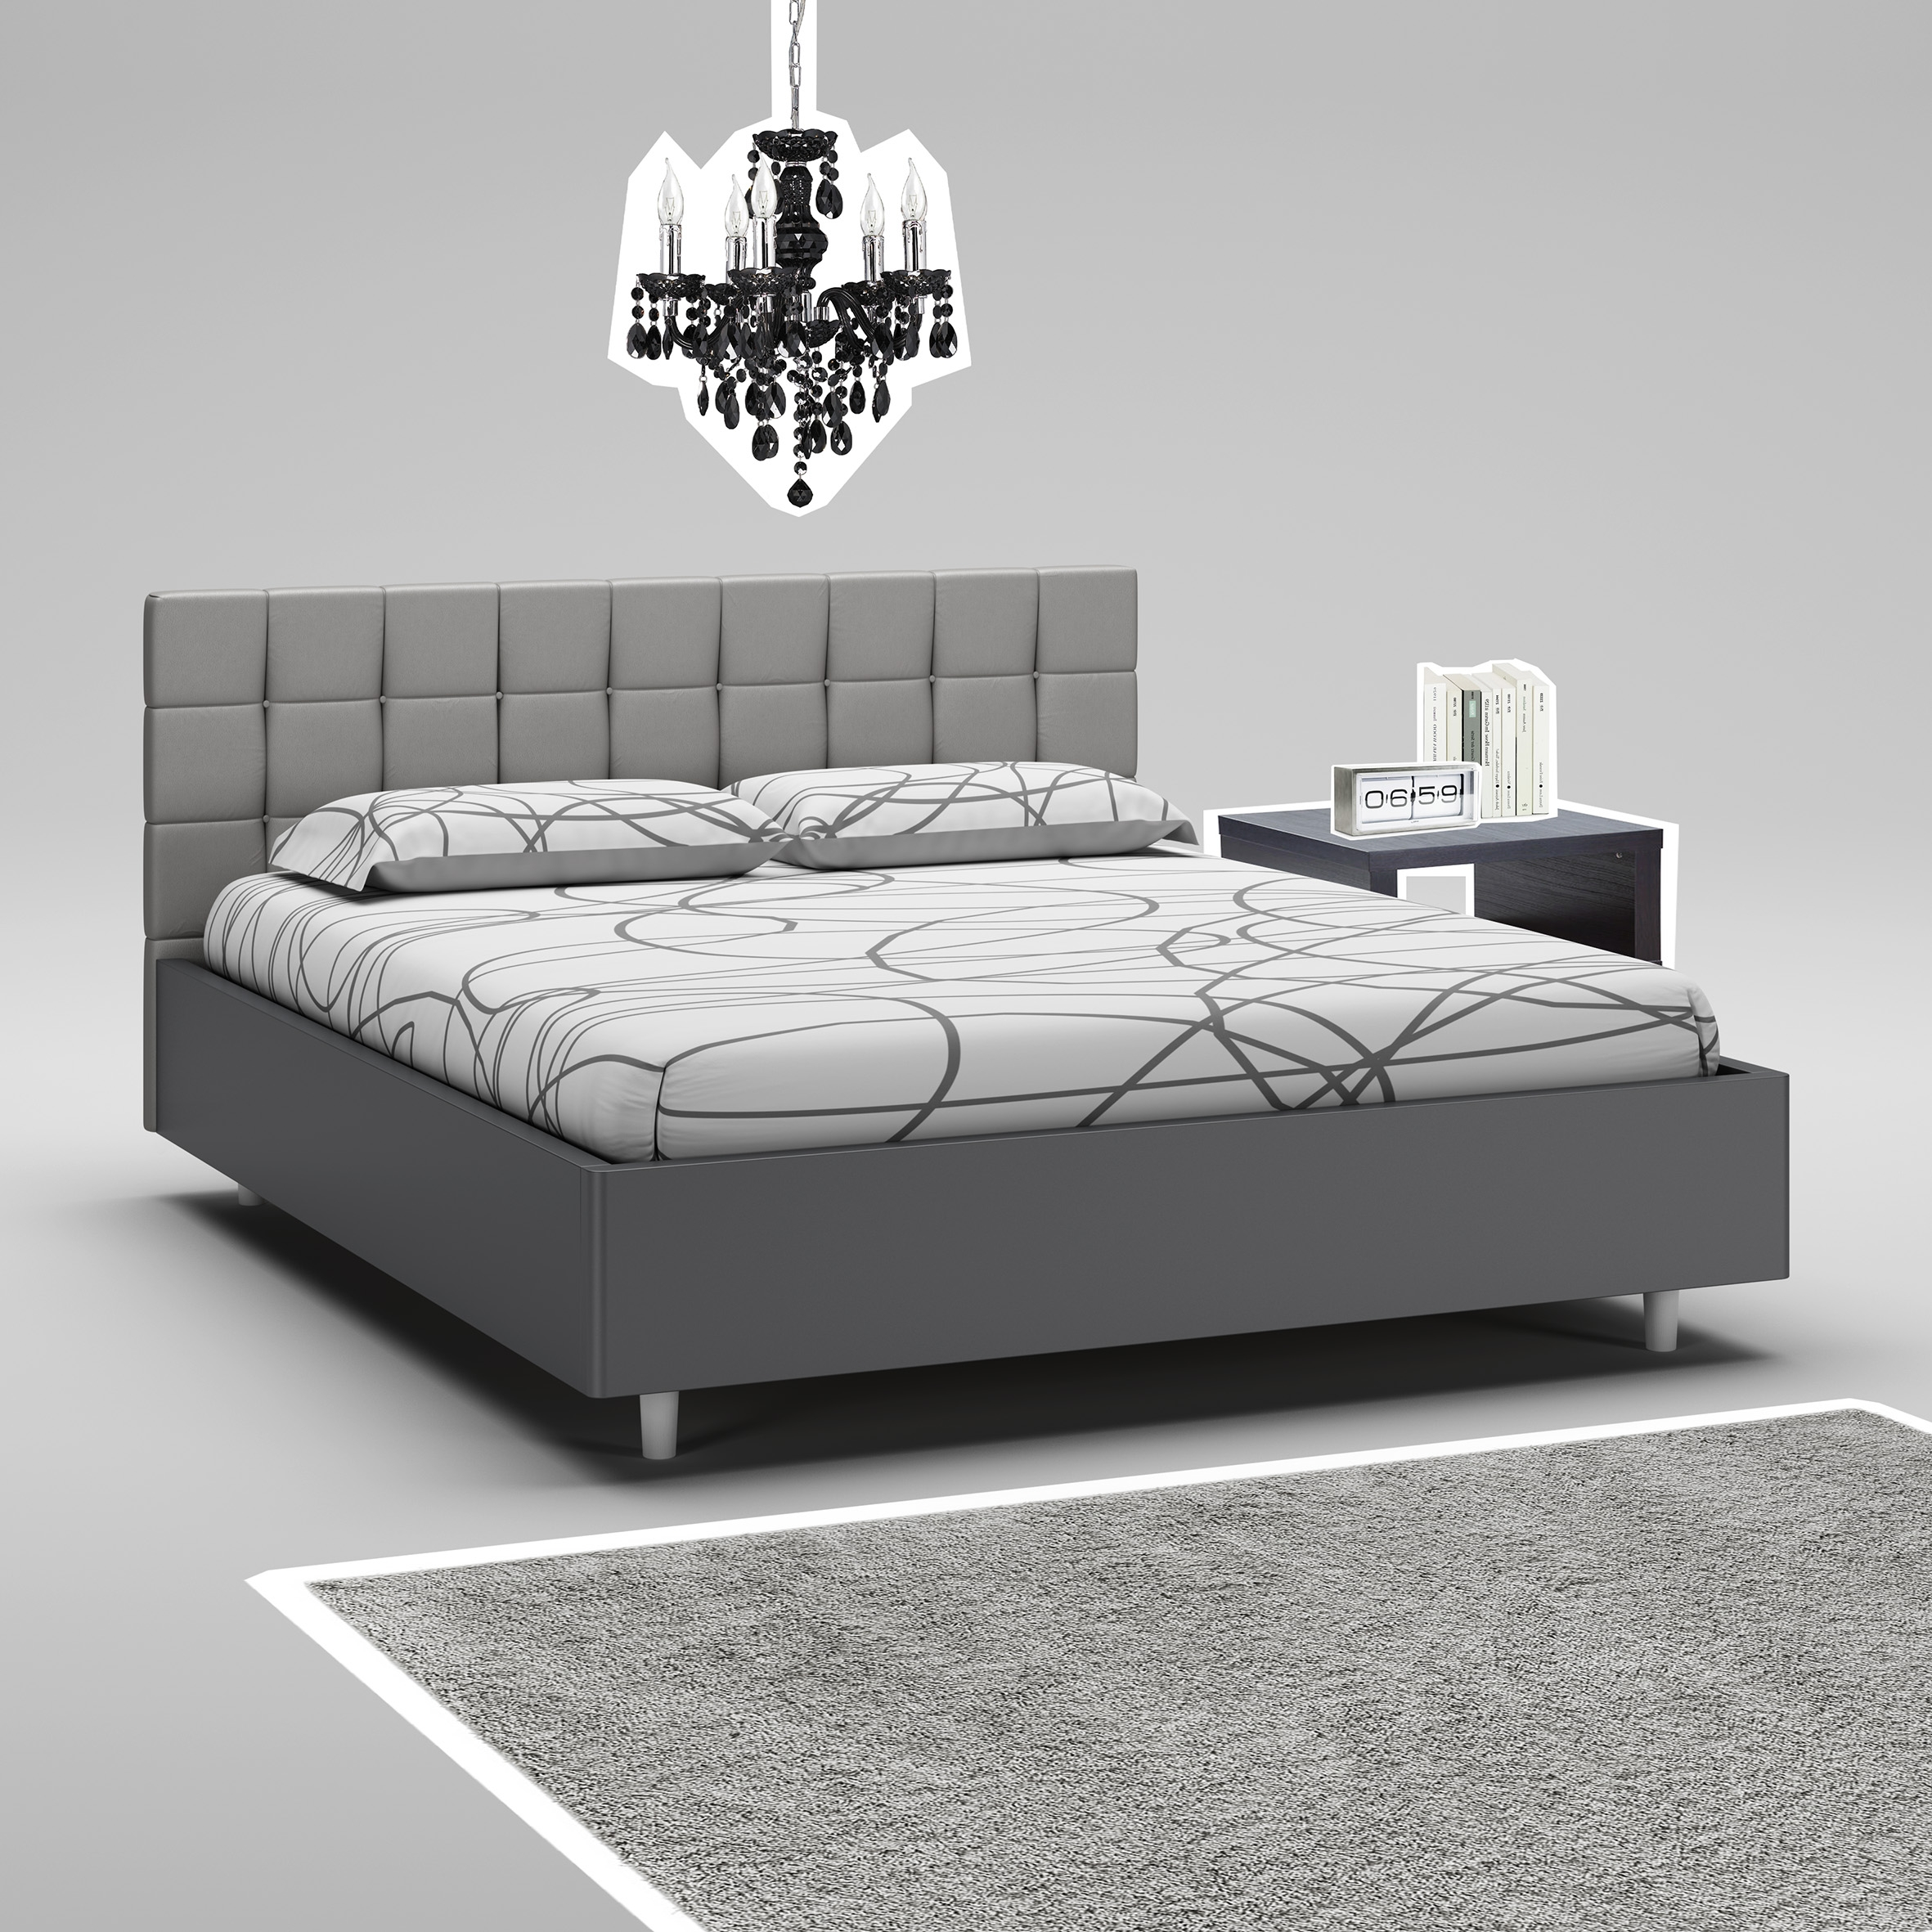 lit avec chevet suspendu fashion designs. Black Bedroom Furniture Sets. Home Design Ideas